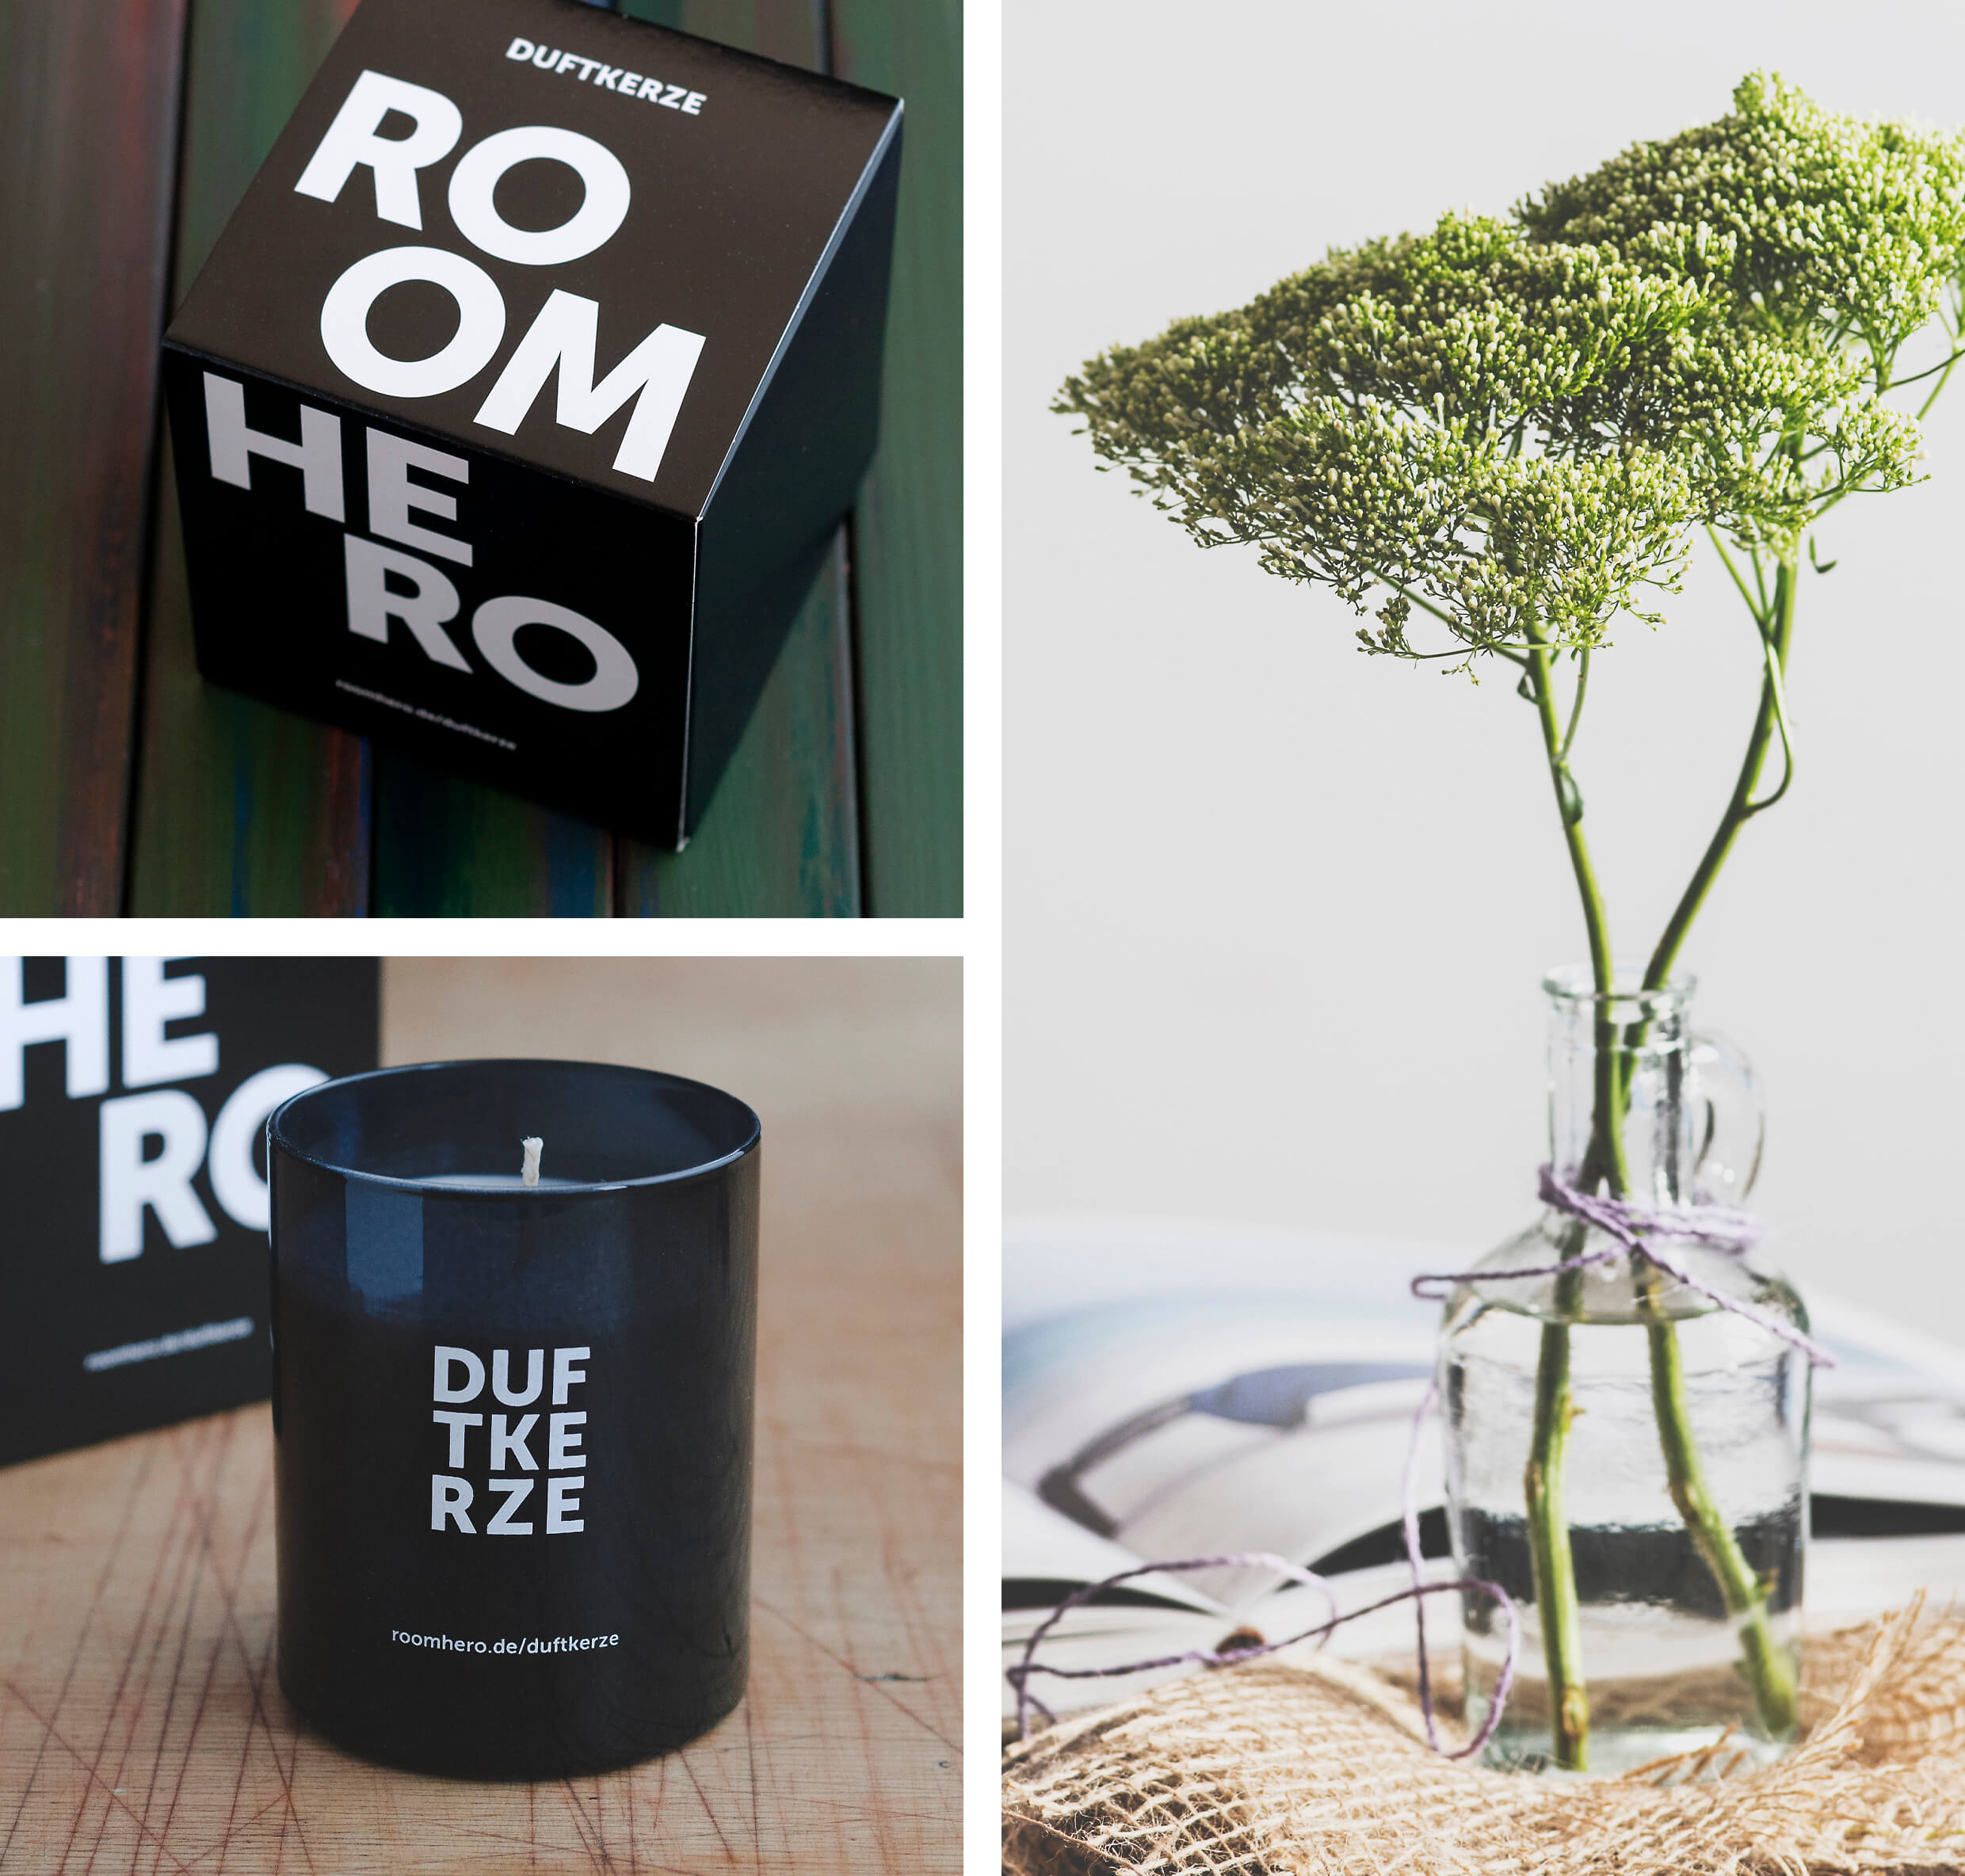 Scented Candle Roomhero